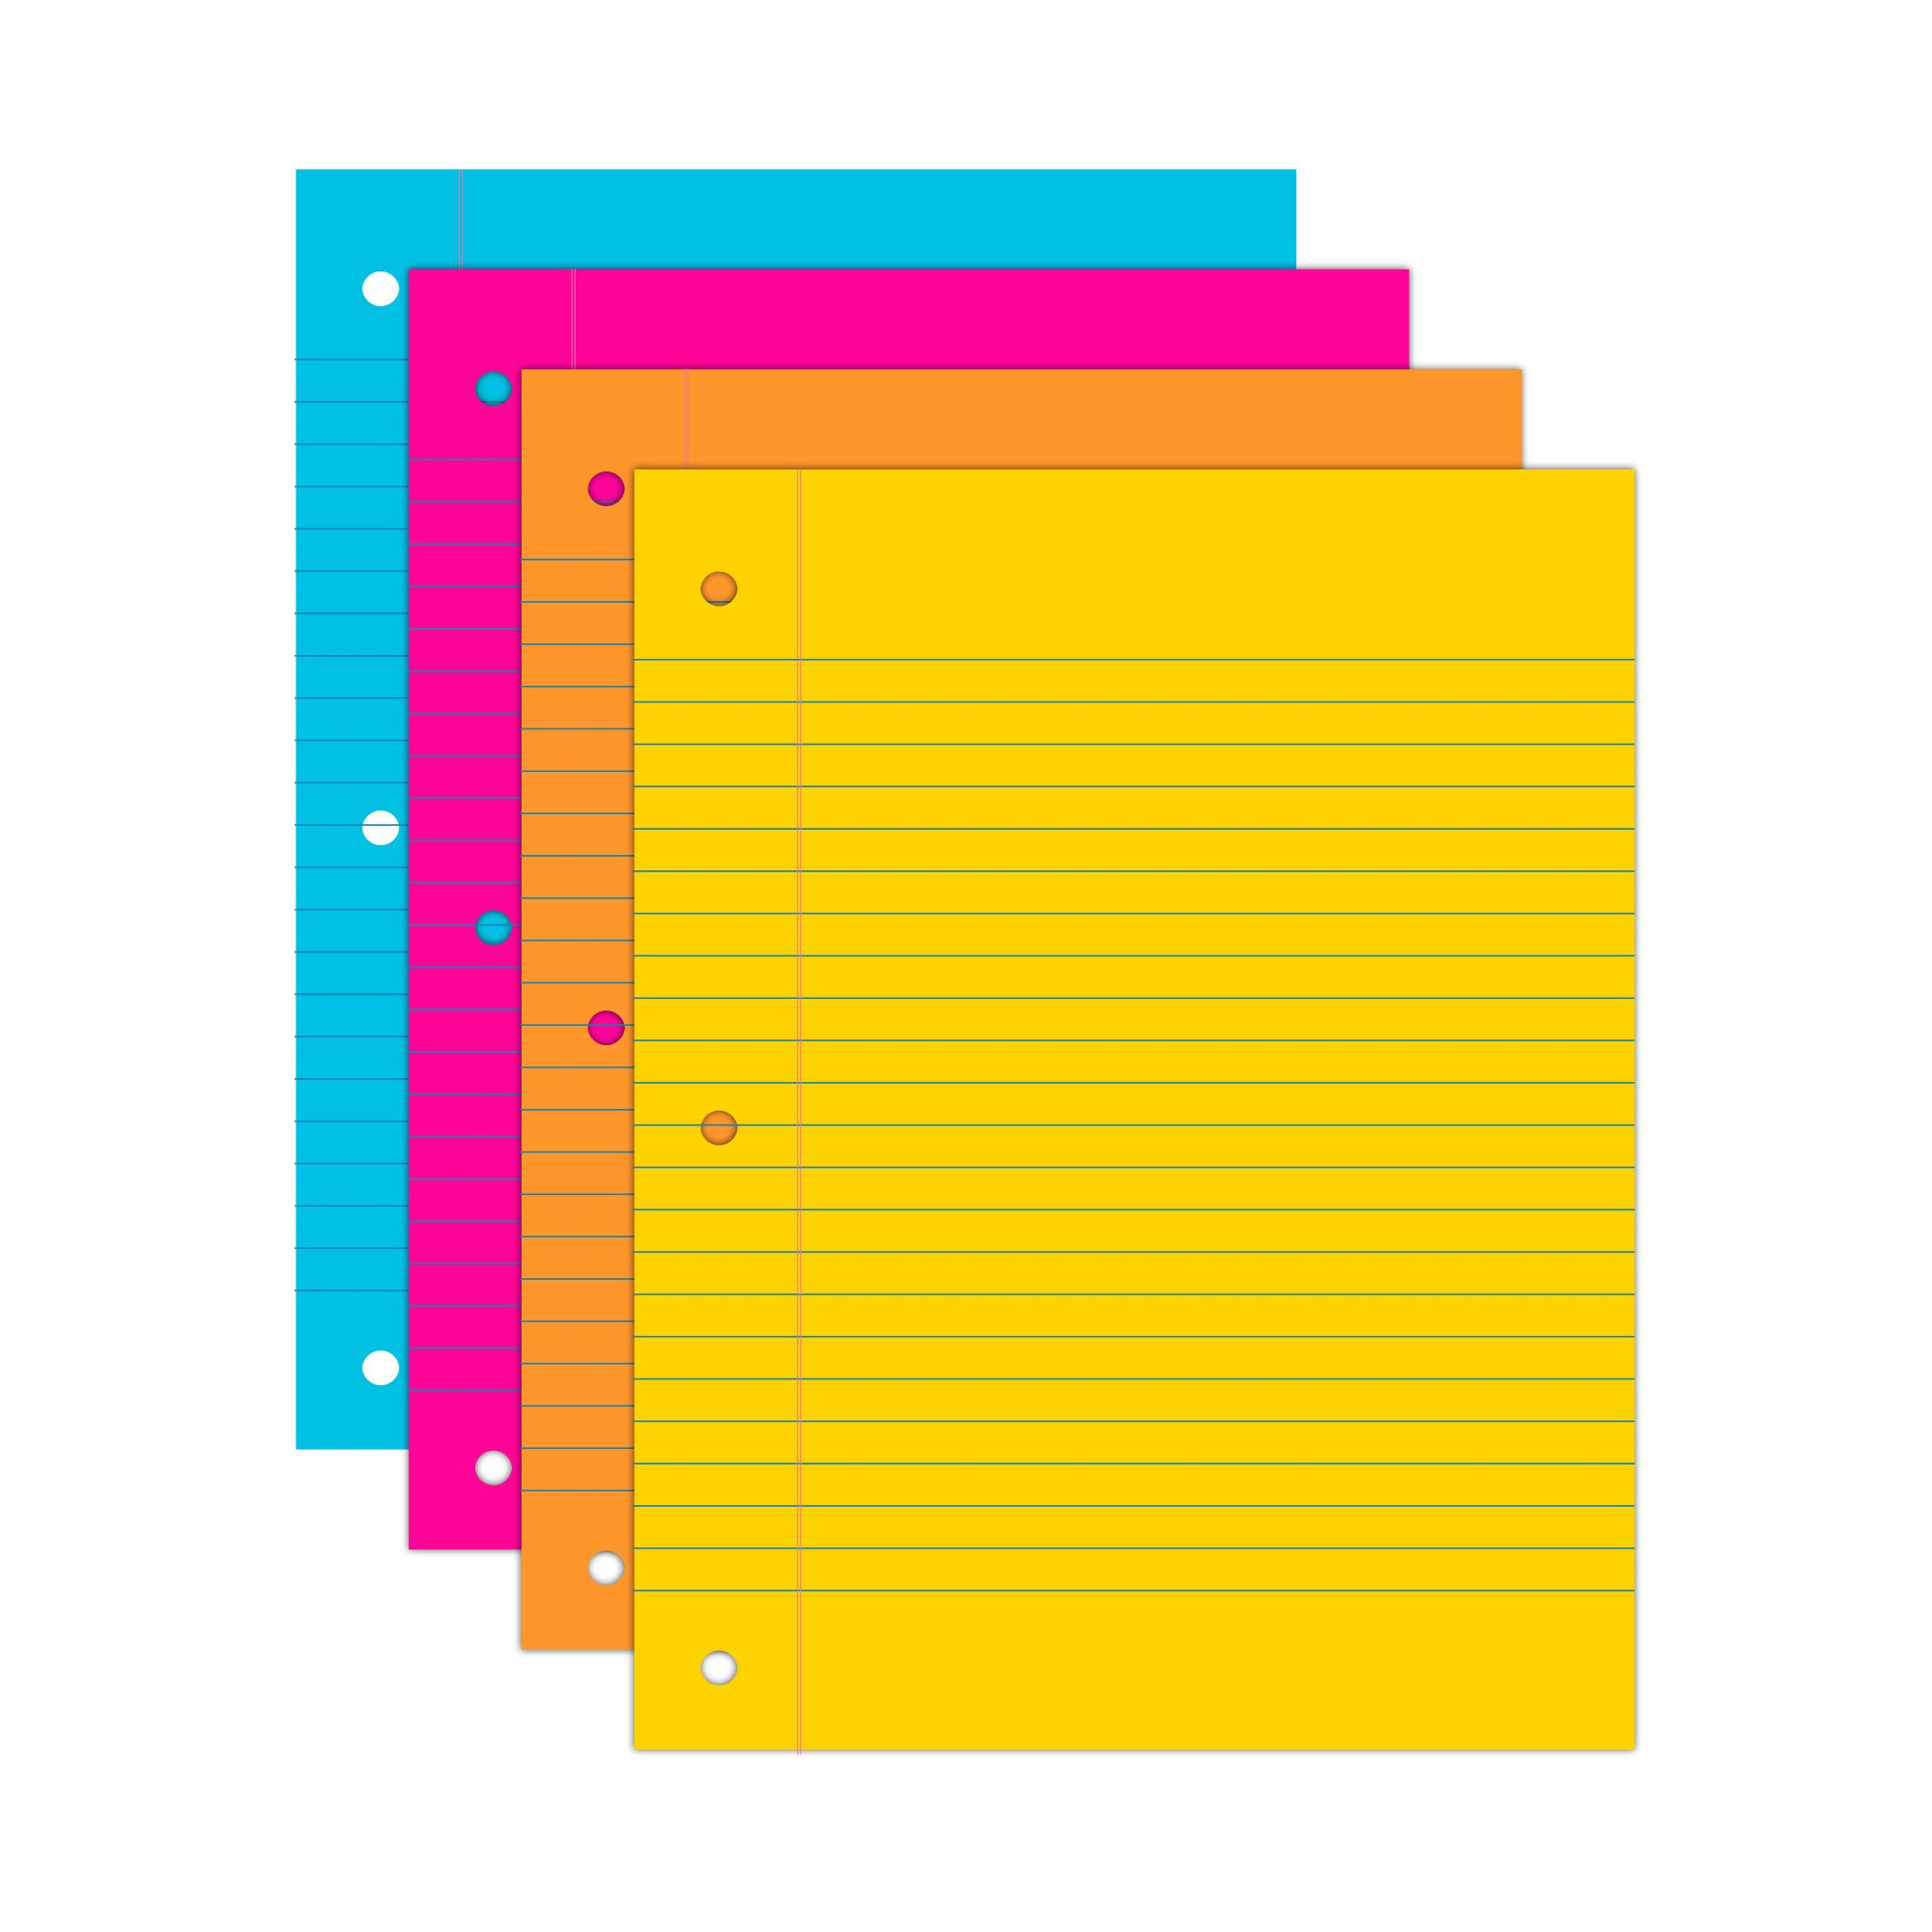 Wausau Astrobrights Wide Ruled Filler Paper Assortment, 100 Count, 8 X 10.5 Inches (25910) by Astrobrights (Image #2)